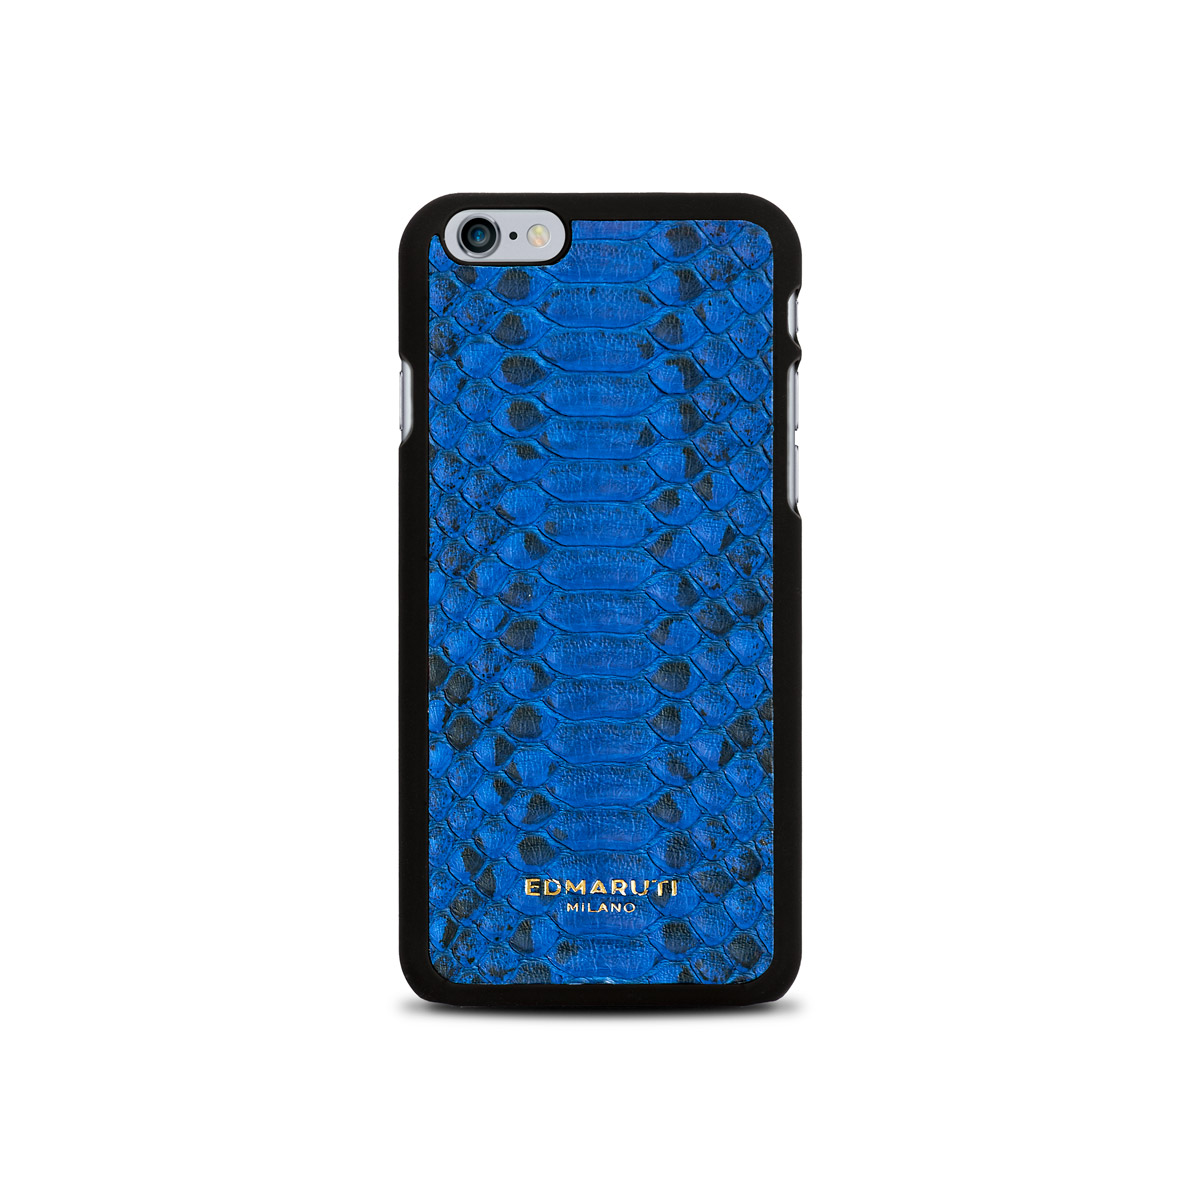 phone covers iphone 6 iphone 6 6s python blue edmaruti 8274